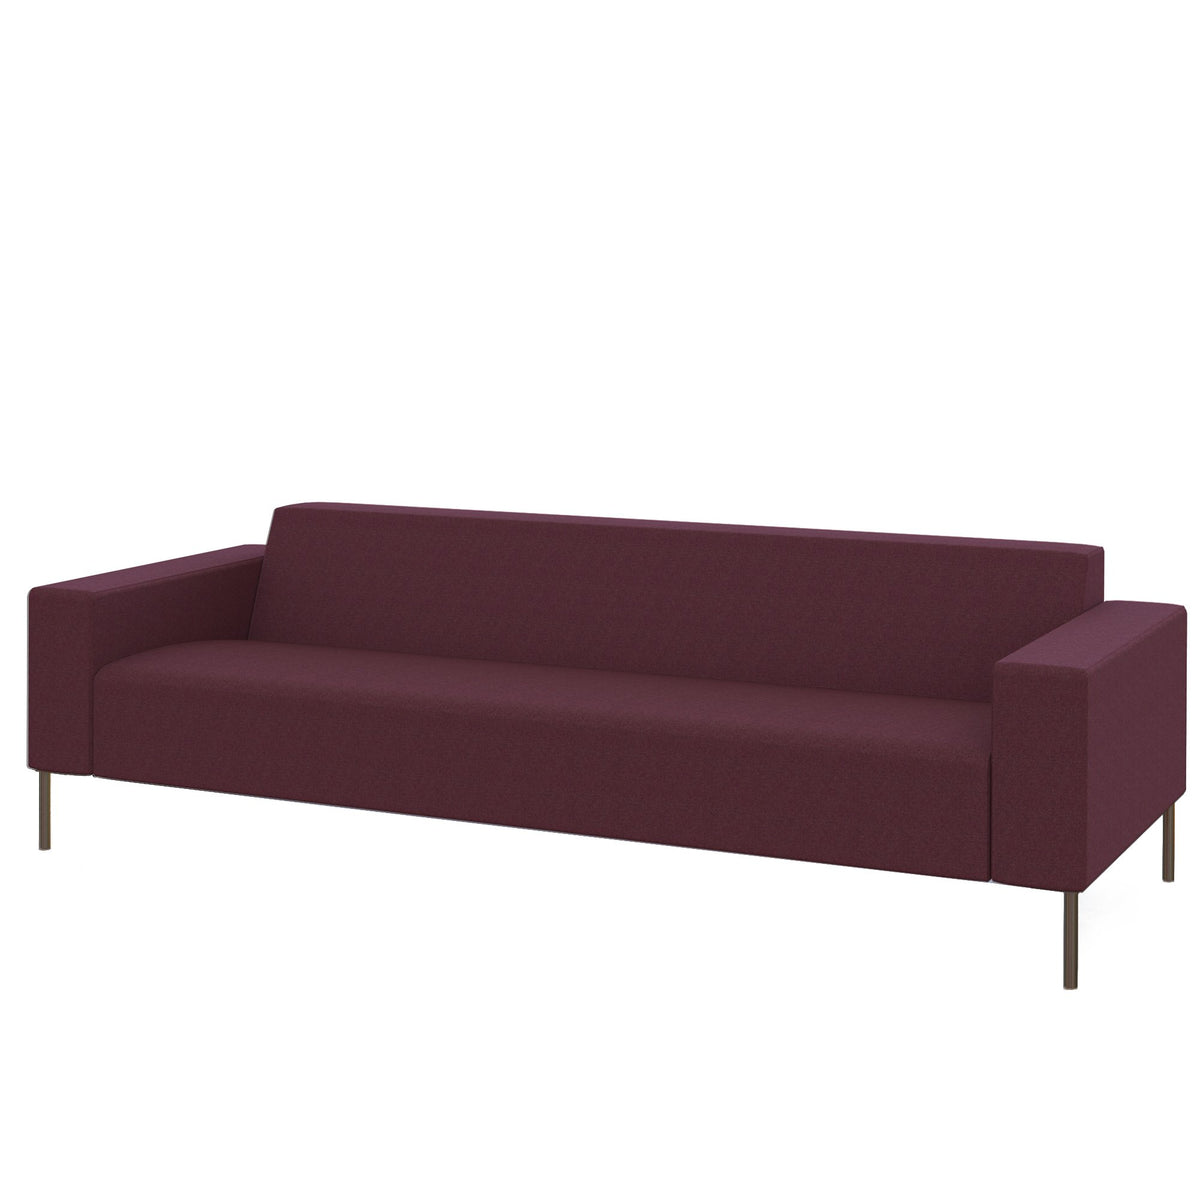 Hitch Mylius HM18 Origin Three Seat Sofa Brushed Stainless Steel Legs Wembley